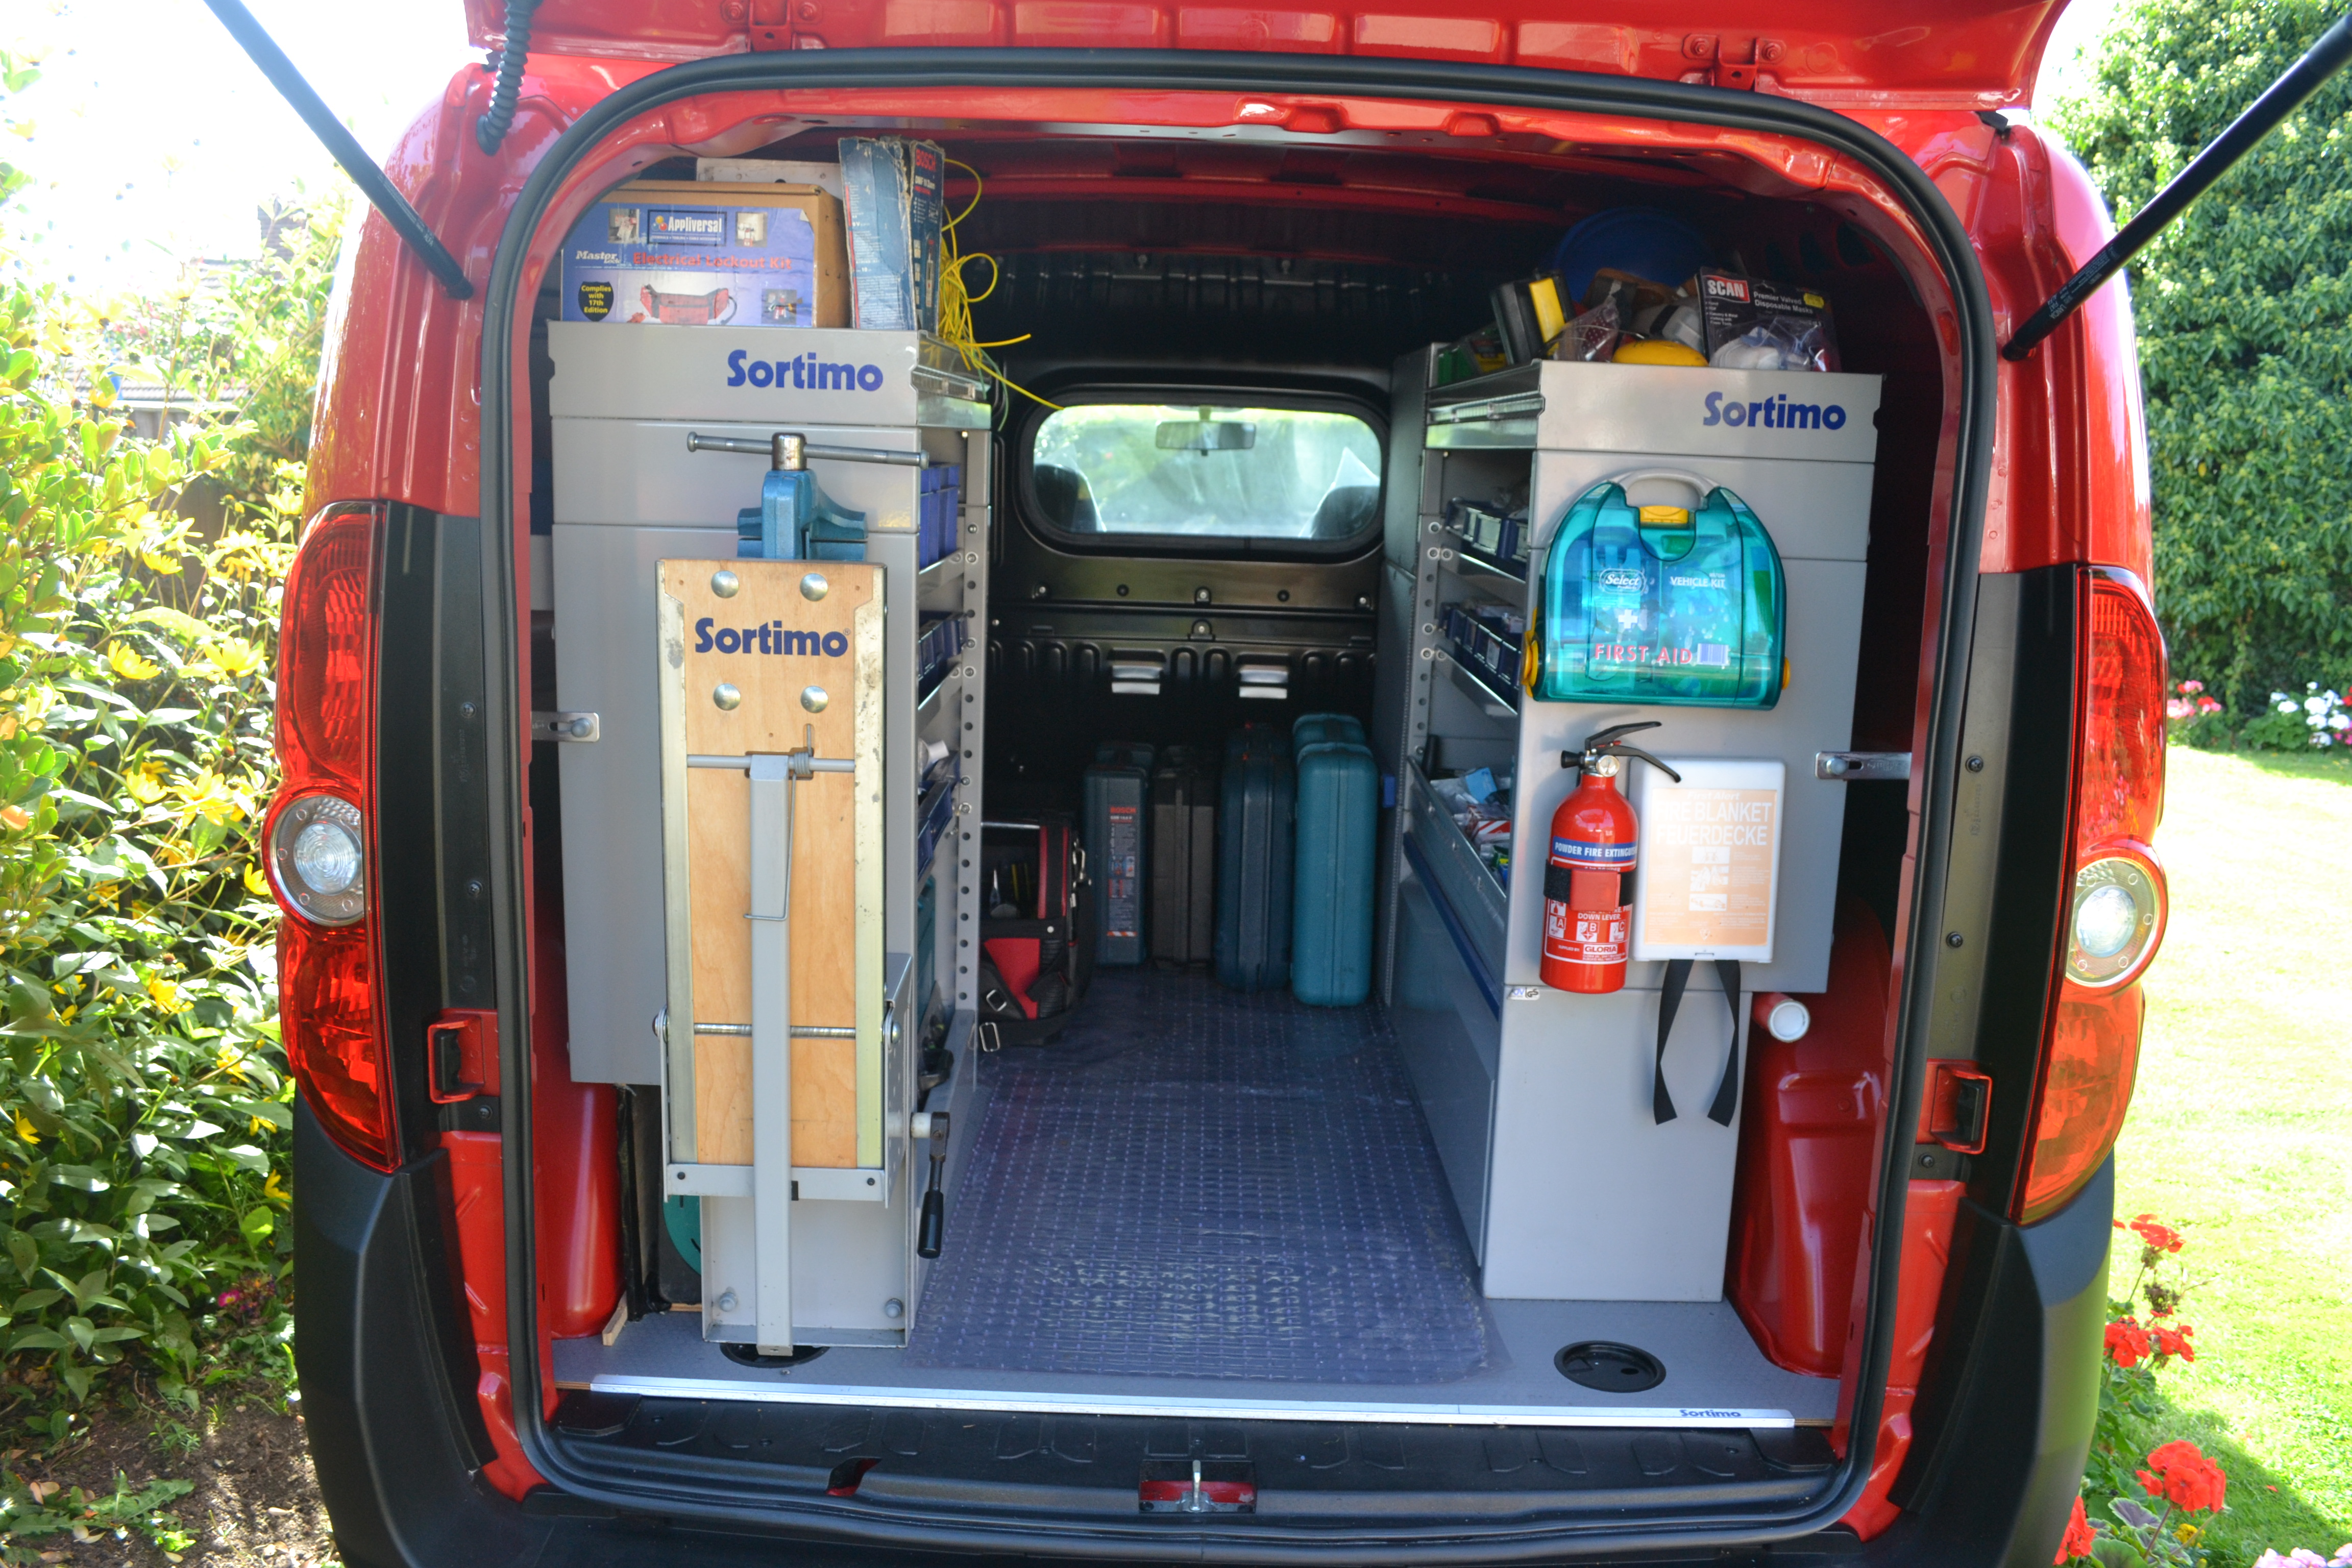 Contracting van fitted with Sortimo systems